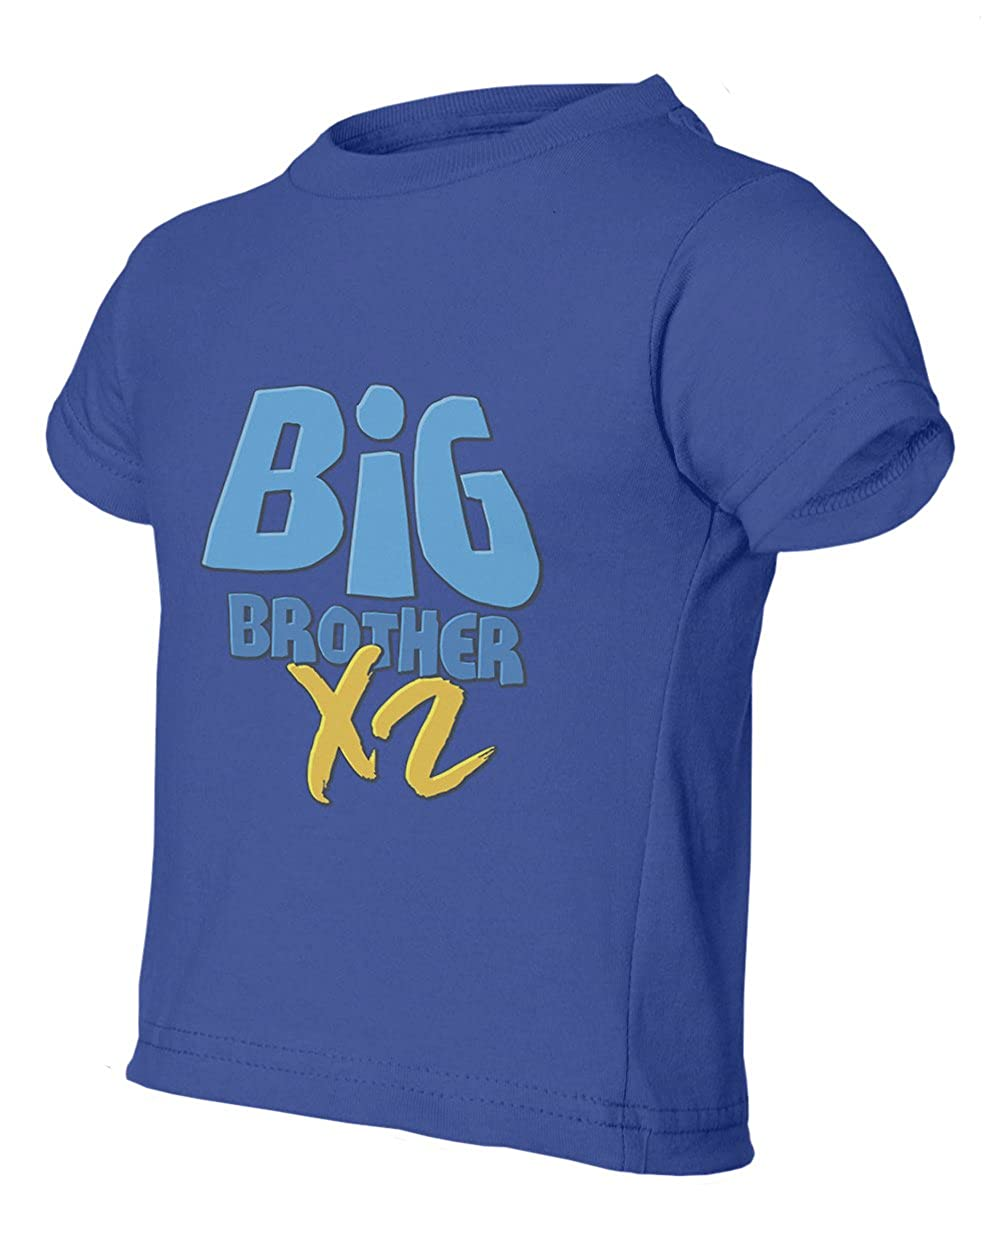 Big Brother X 2 Little Boys Youth /& Toddler Tee Shirt